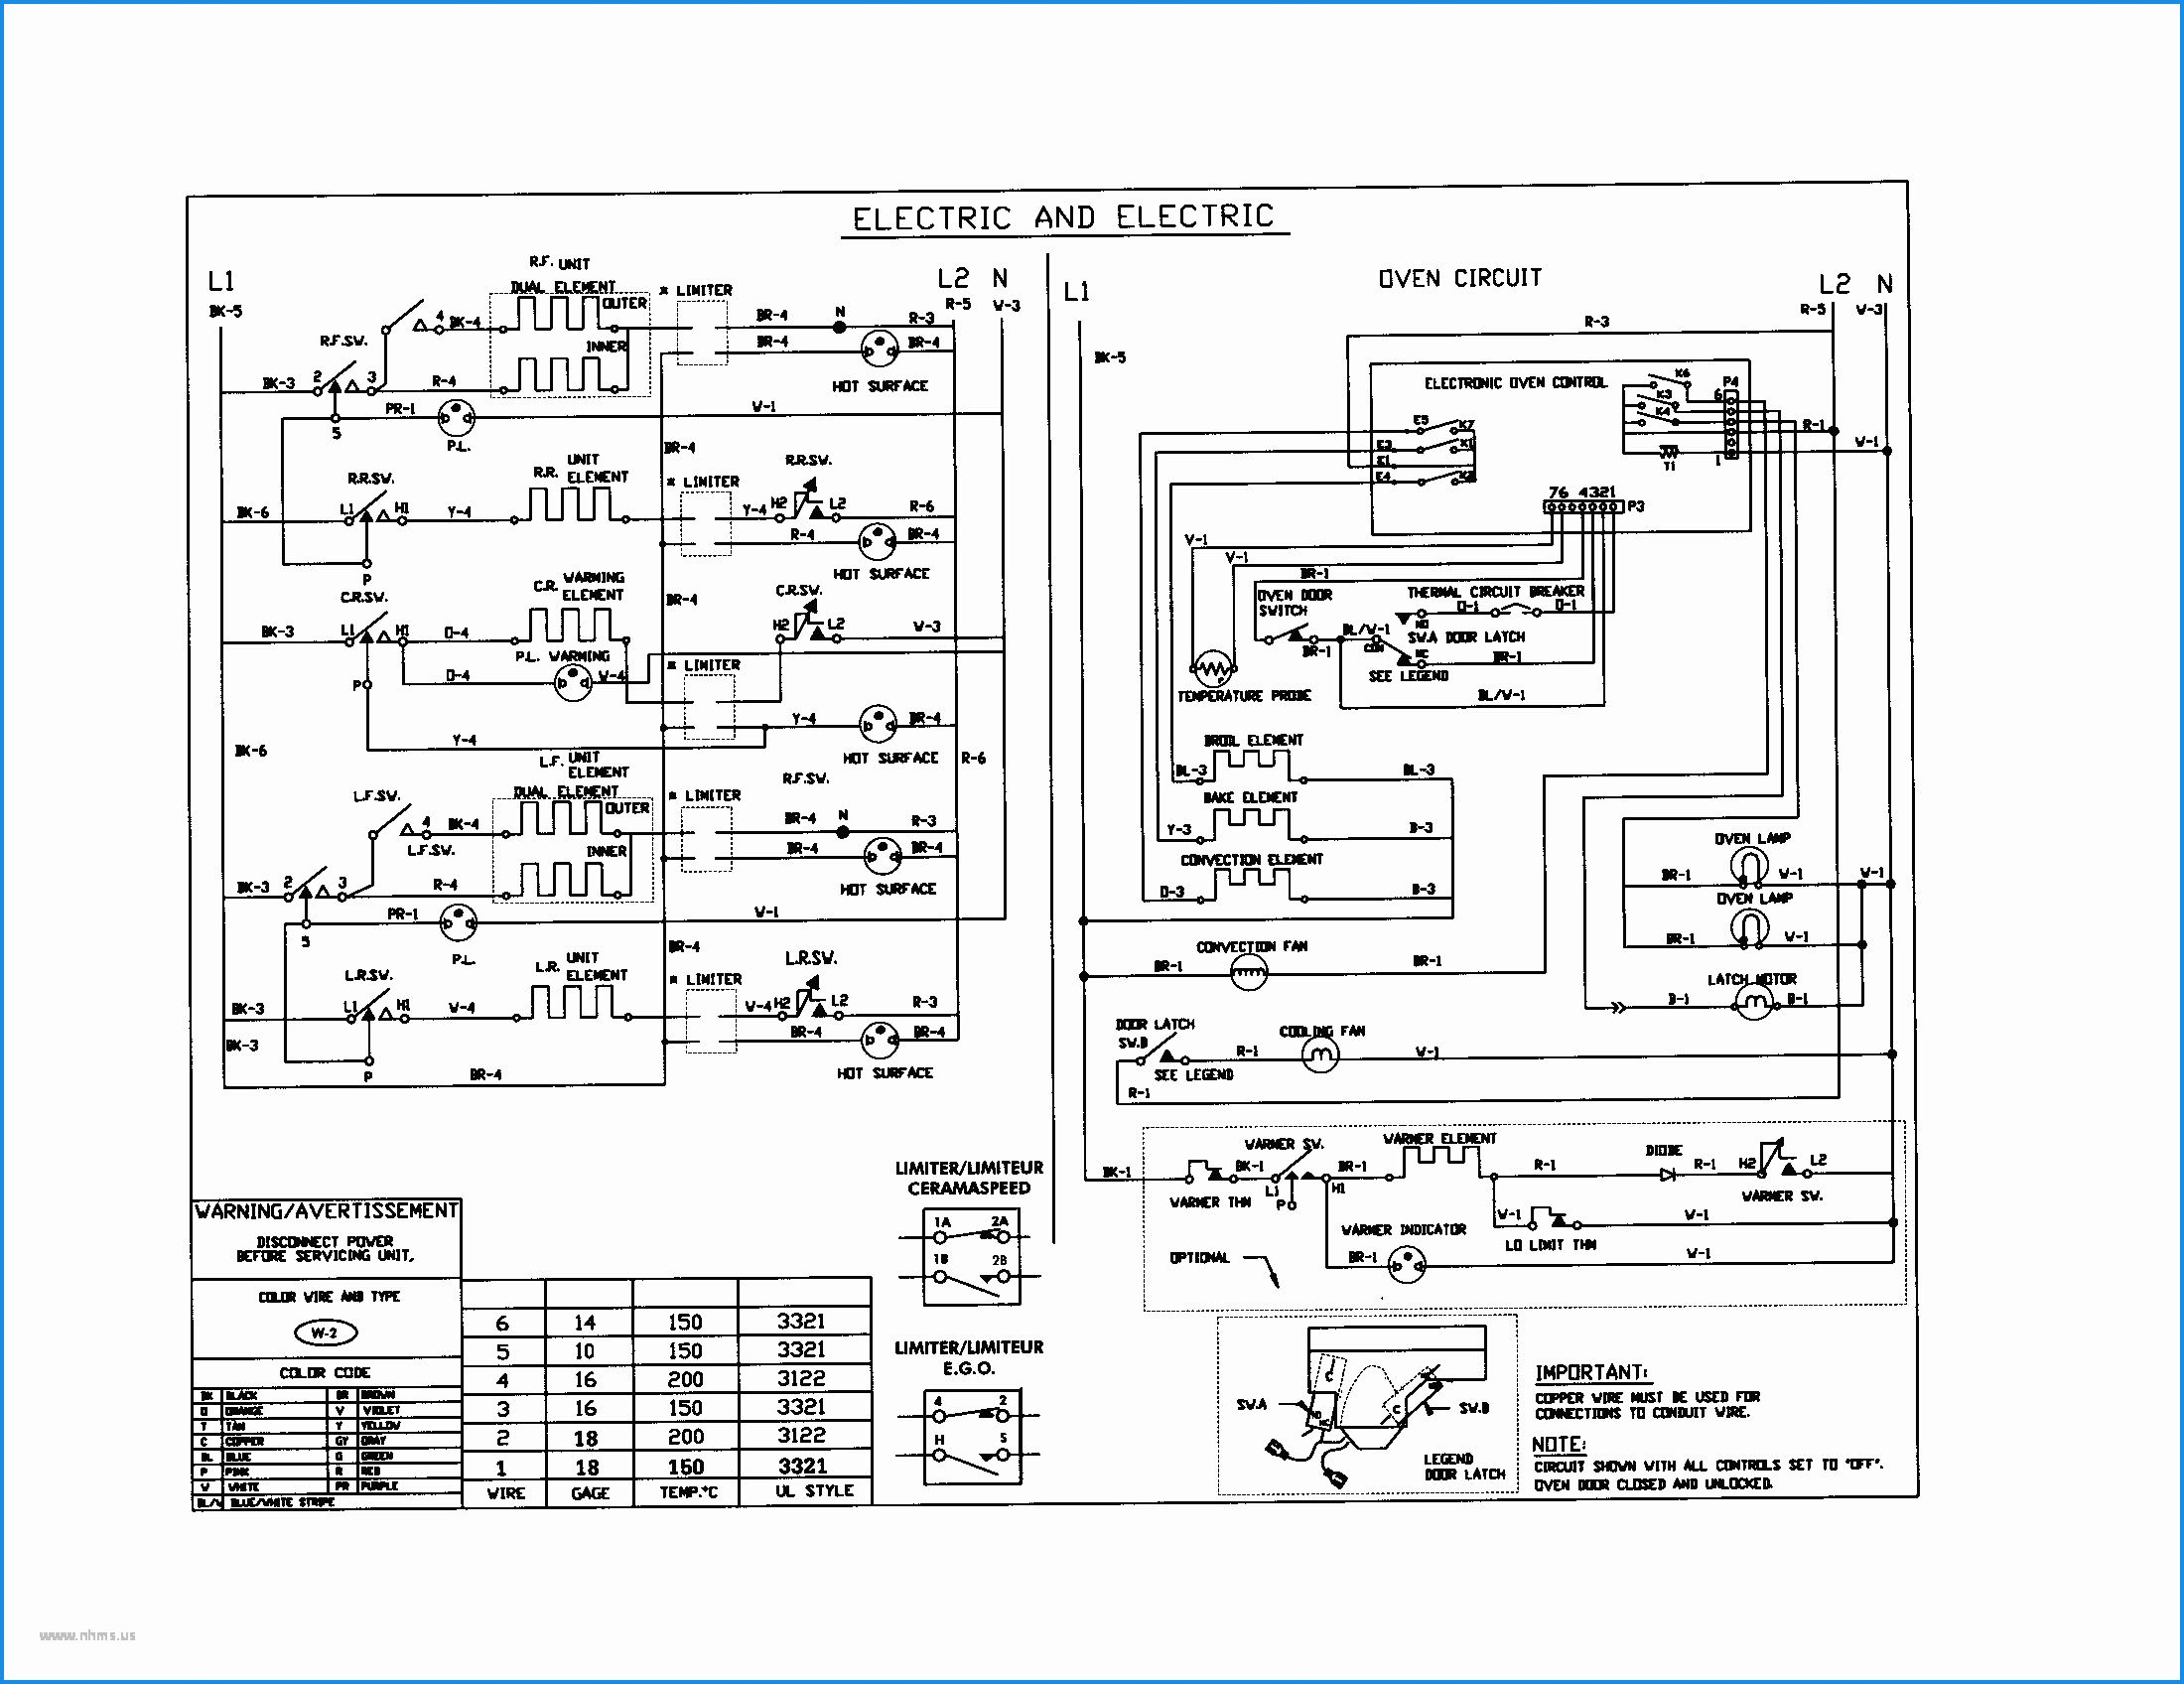 Wiring Diagram Of Washing Machine With Dryer Http Bookingritzcarlton Info Wiring Diagram Of Wa Washing Machine And Dryer Kenmore Washer Kenmore Refrigerator